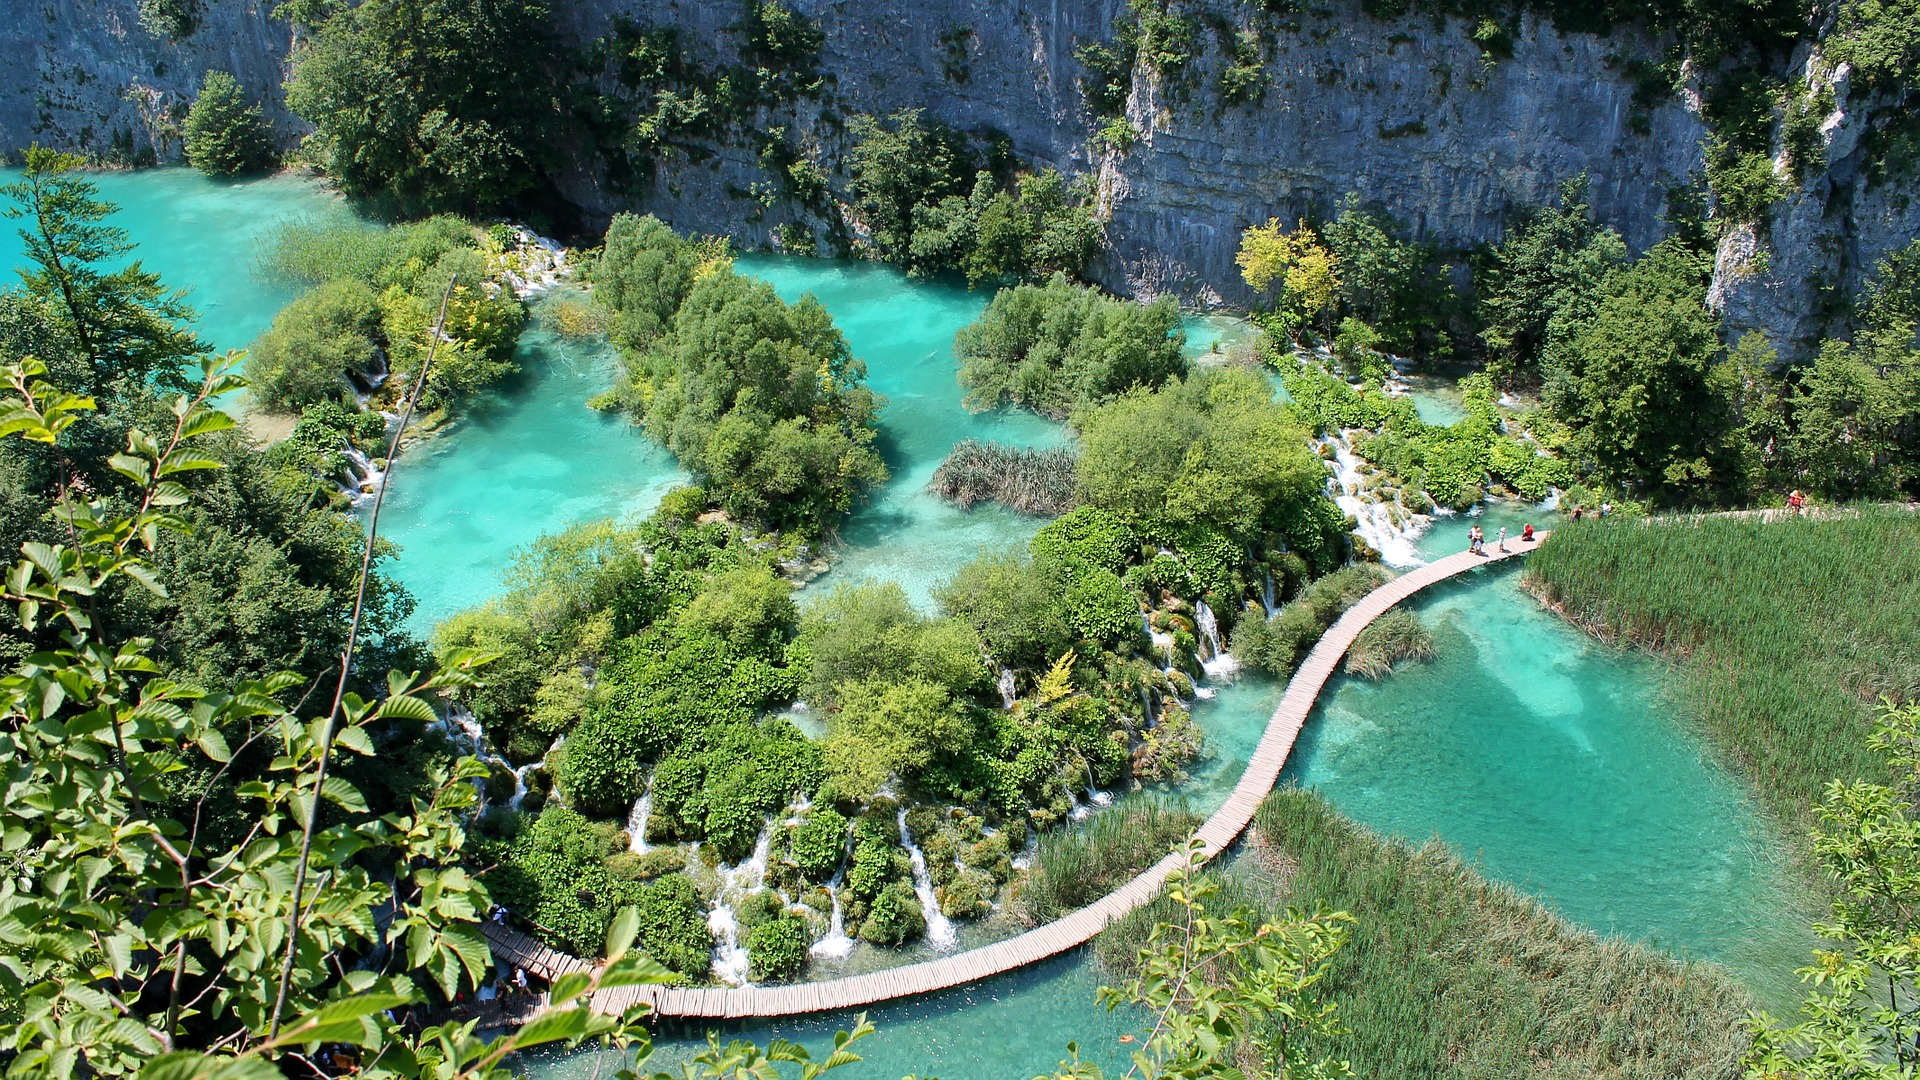 Image of Plitvice Lakes National Park